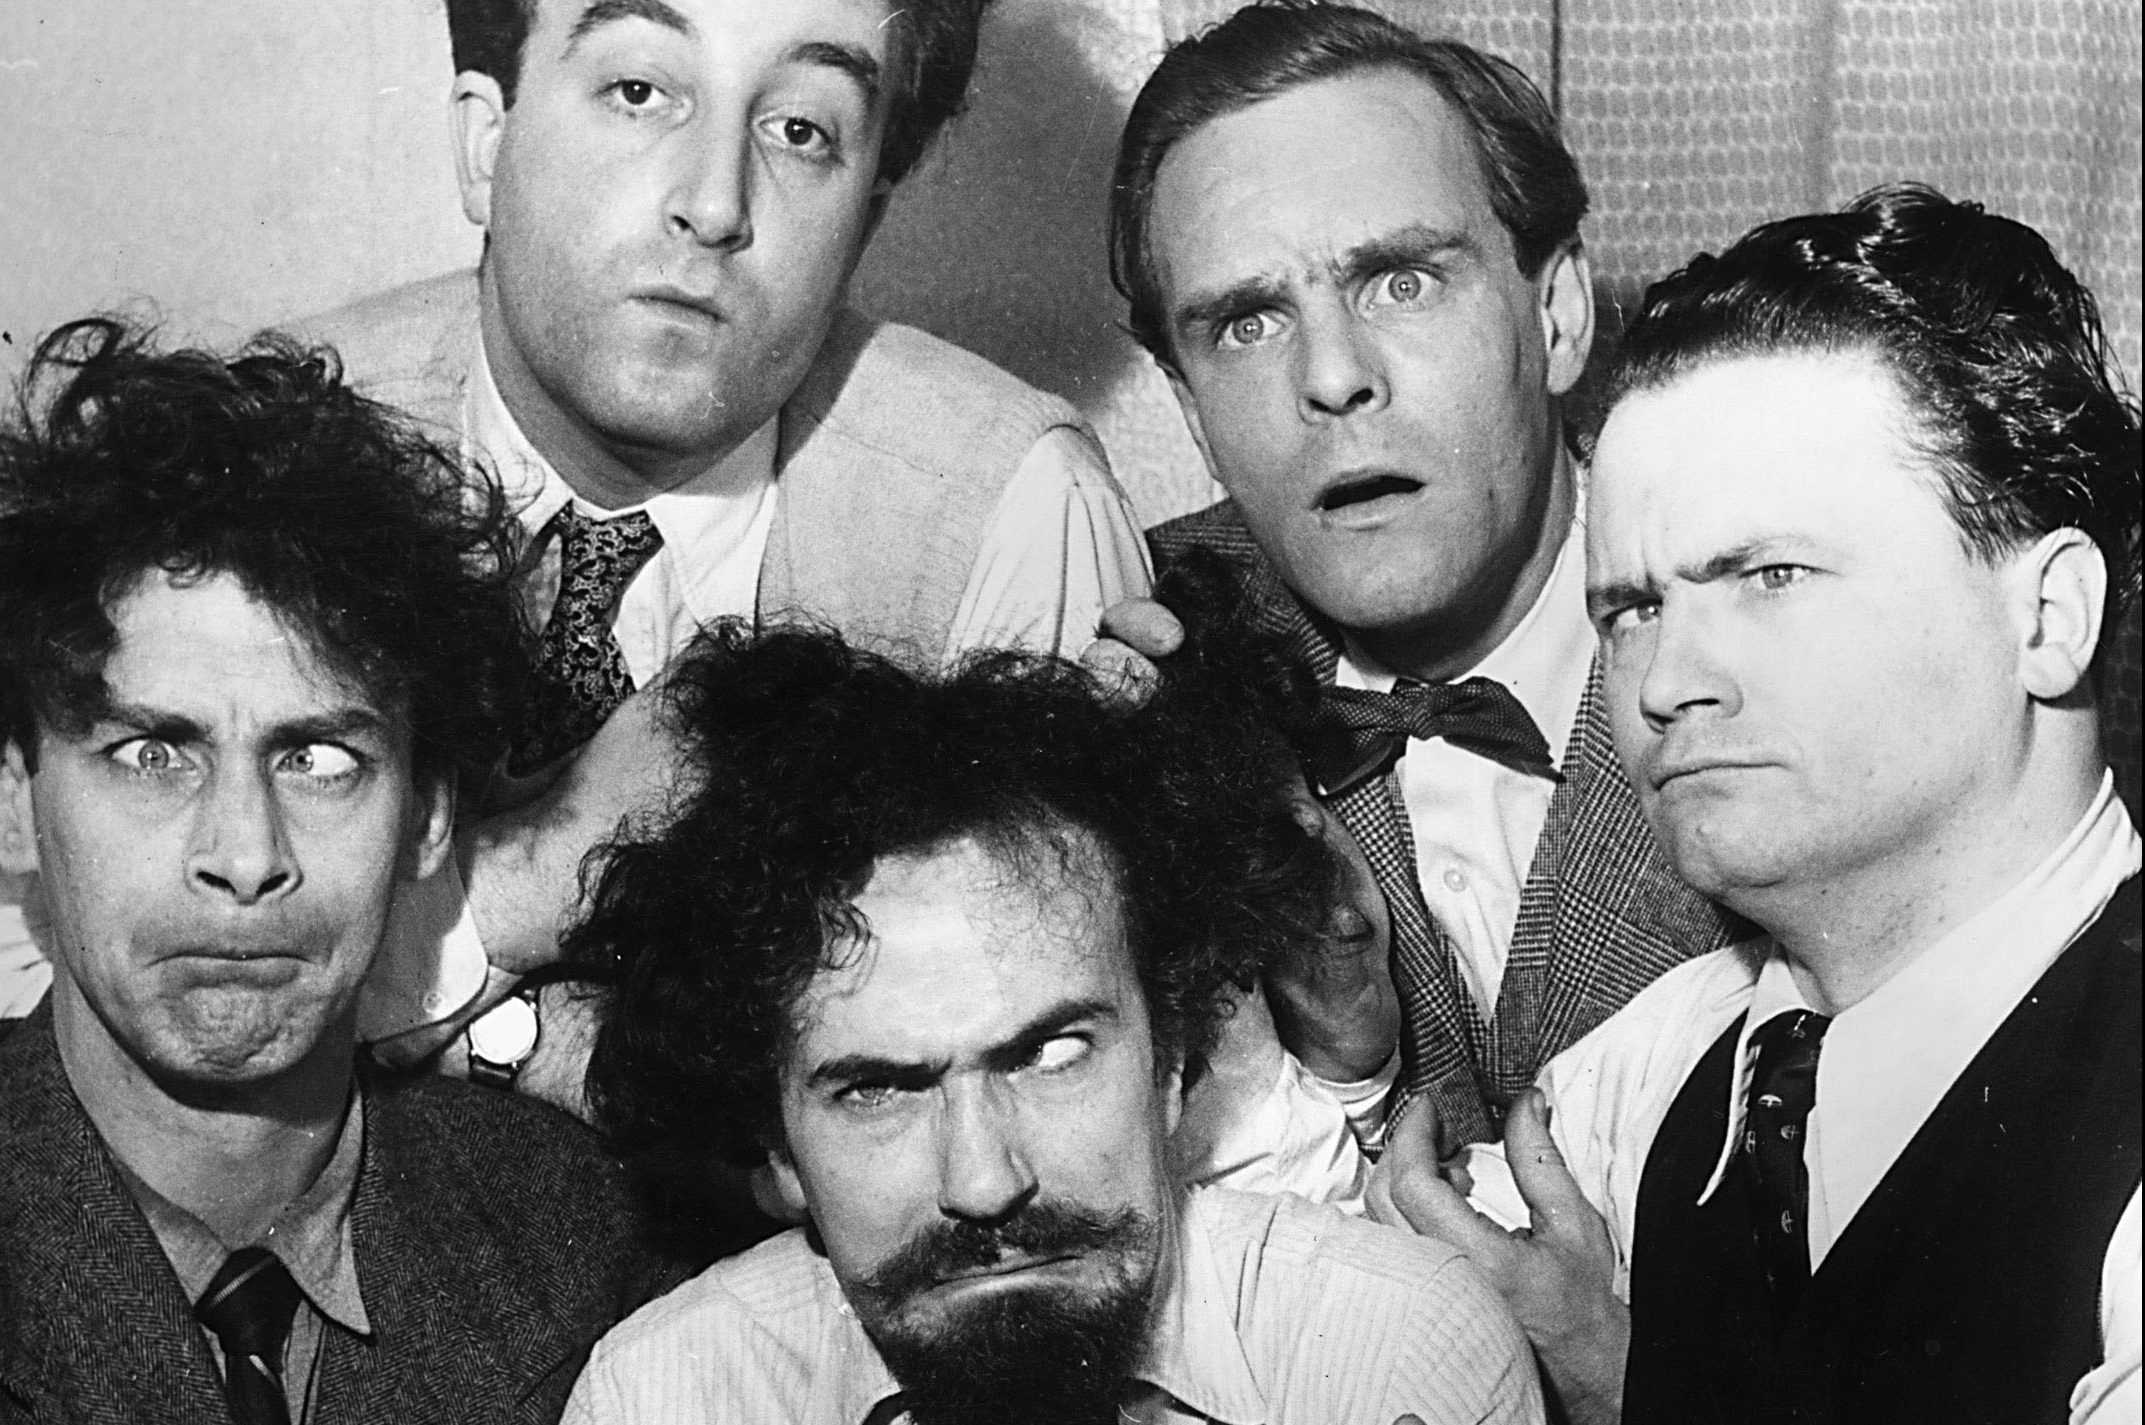 The cast of the British comedy act The Goons included (L-R) Spike Milligan, Peter Sellers, Ian Carmichael, Harry Secombe and Michael Bentine (Getty Images)